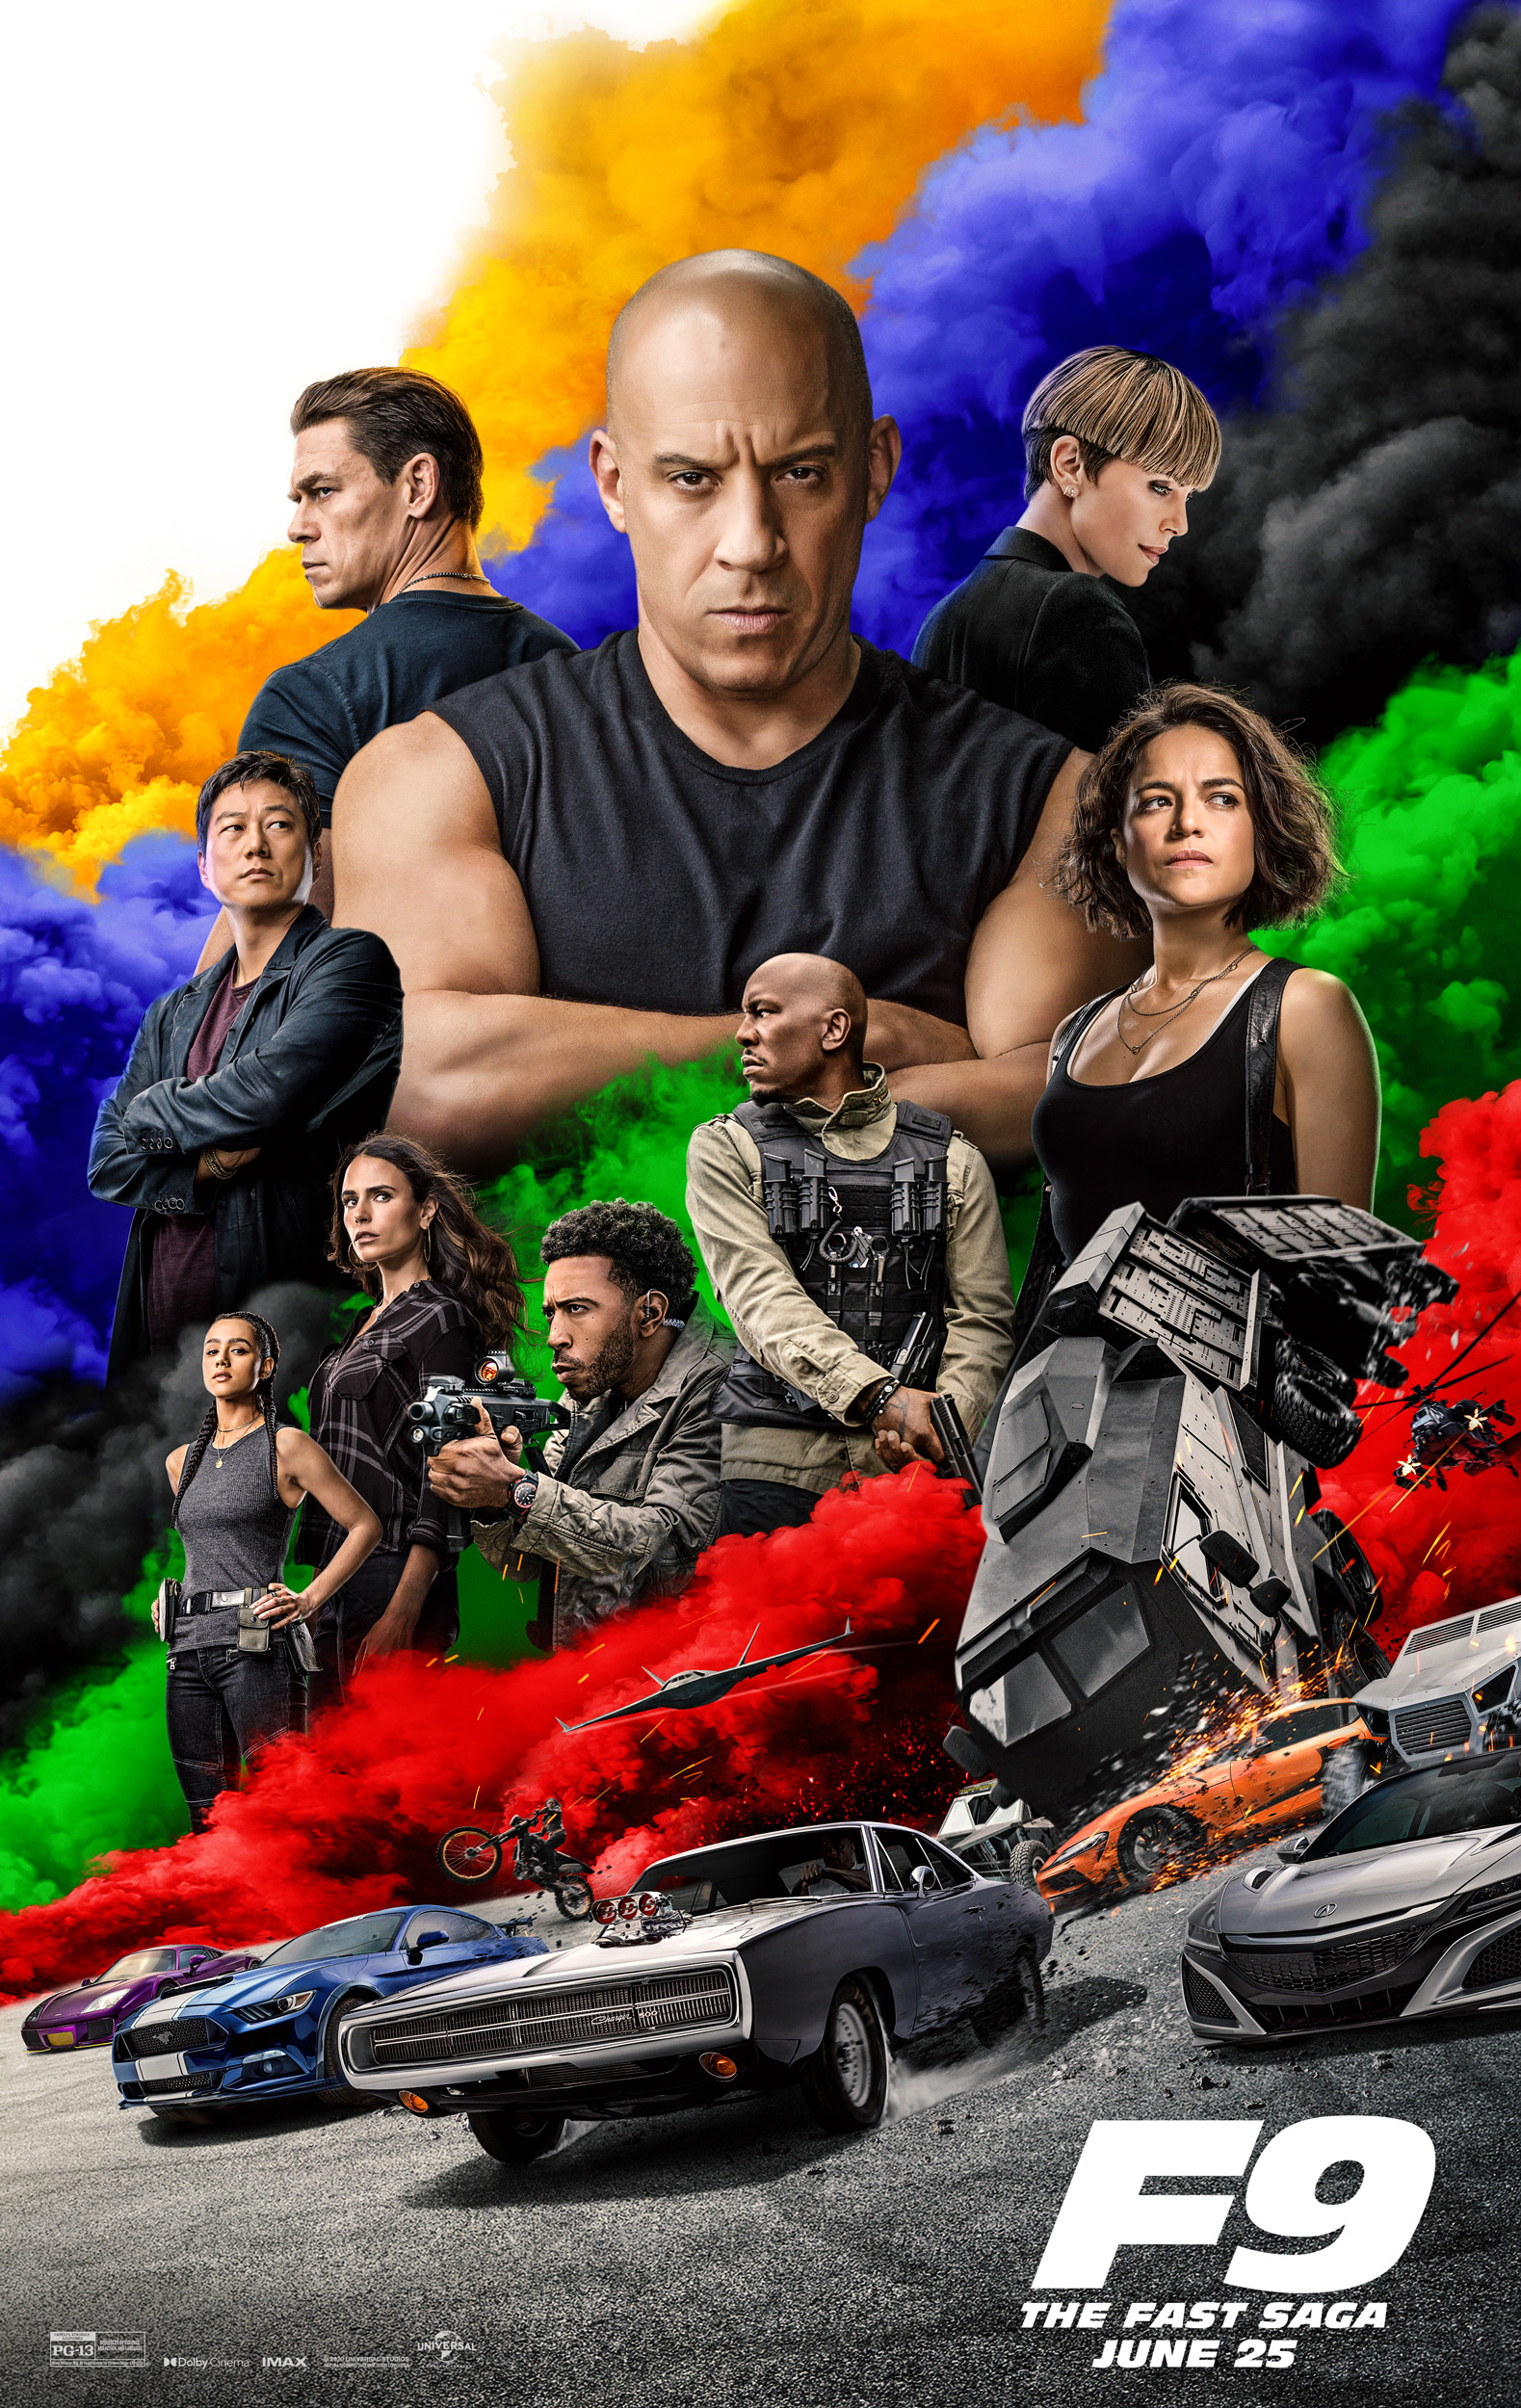 Fast and Furious F9 movie poster